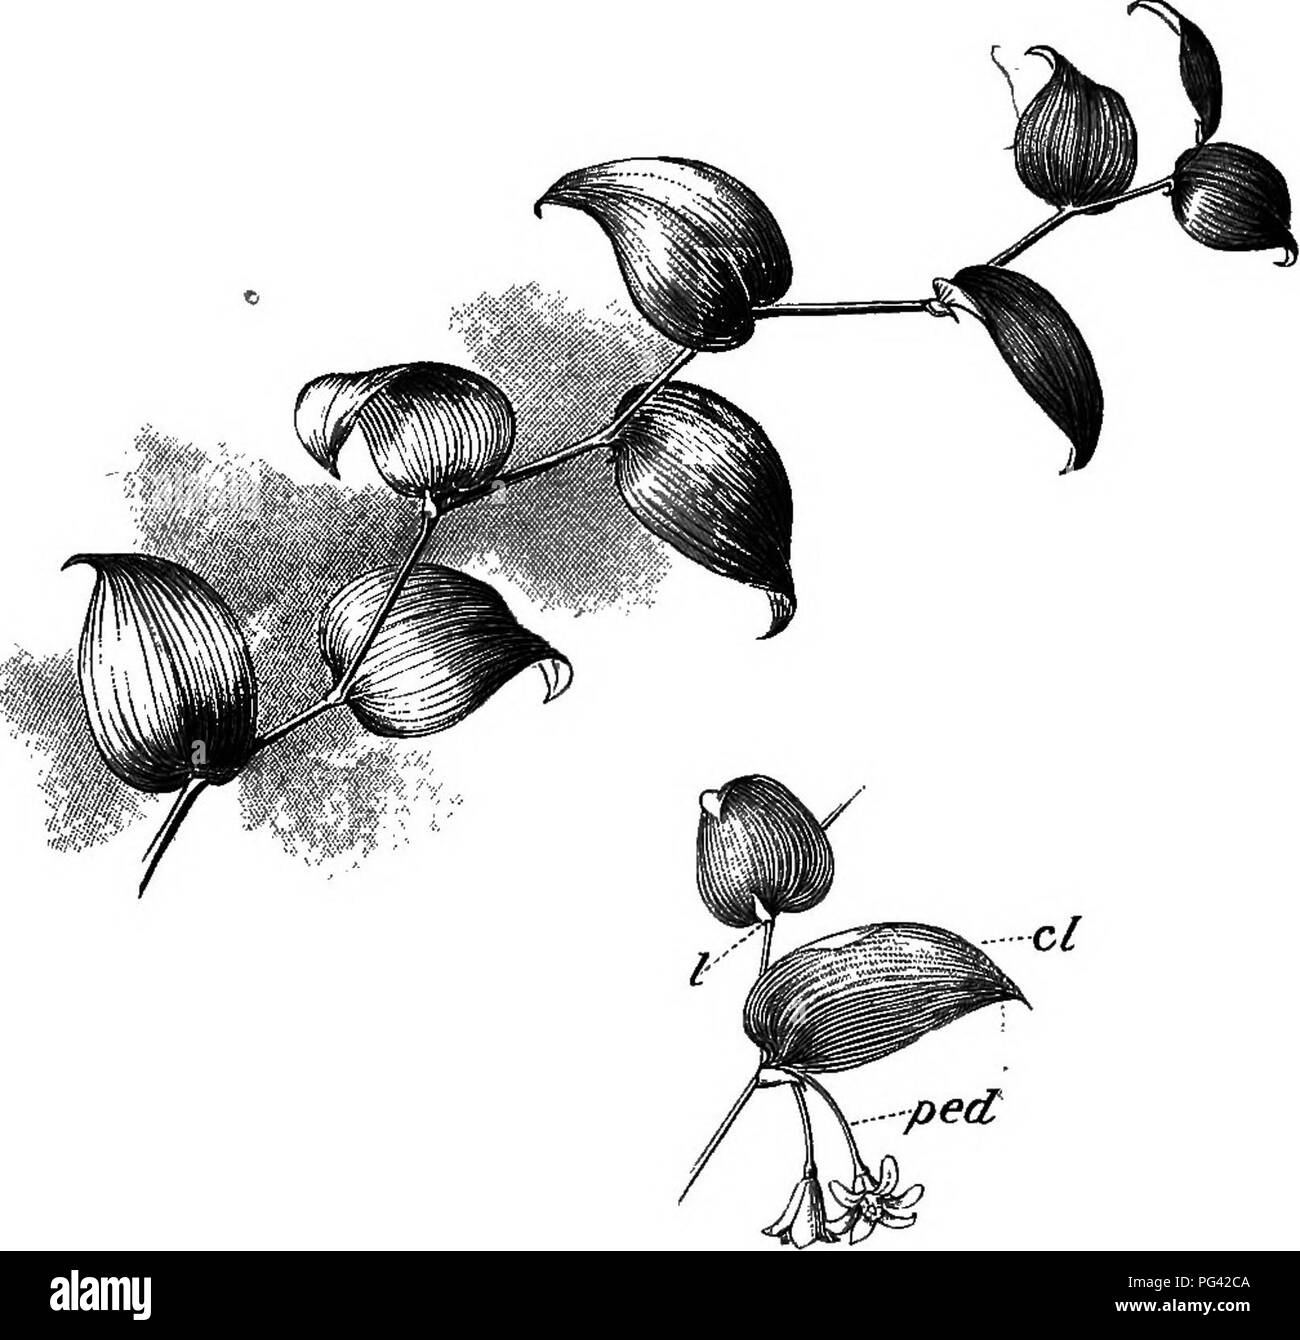 """. Foundations of botany. Botany; Botany. STEMS 81 or the rattan of Indian jungles, reach a length of many hundred feet. On the other hand, in such """"stemless"""" plants as the primrose and the dandelion, the stem may be reduced to a fraction of an inch in length. It may take. Fig. 51.—Stem of """"Smilax"""" (Myrsip I, scale-like leaves; cl, oladophyll, or leaf-like branch, growing in tlie axil of the leaf; ped, flower-stalk, growing in the axil of a leaf. on apparently root-like forms, as in many grasses and sedges, or become thickened by underground deposits of starch and other plan - Stock Image"""